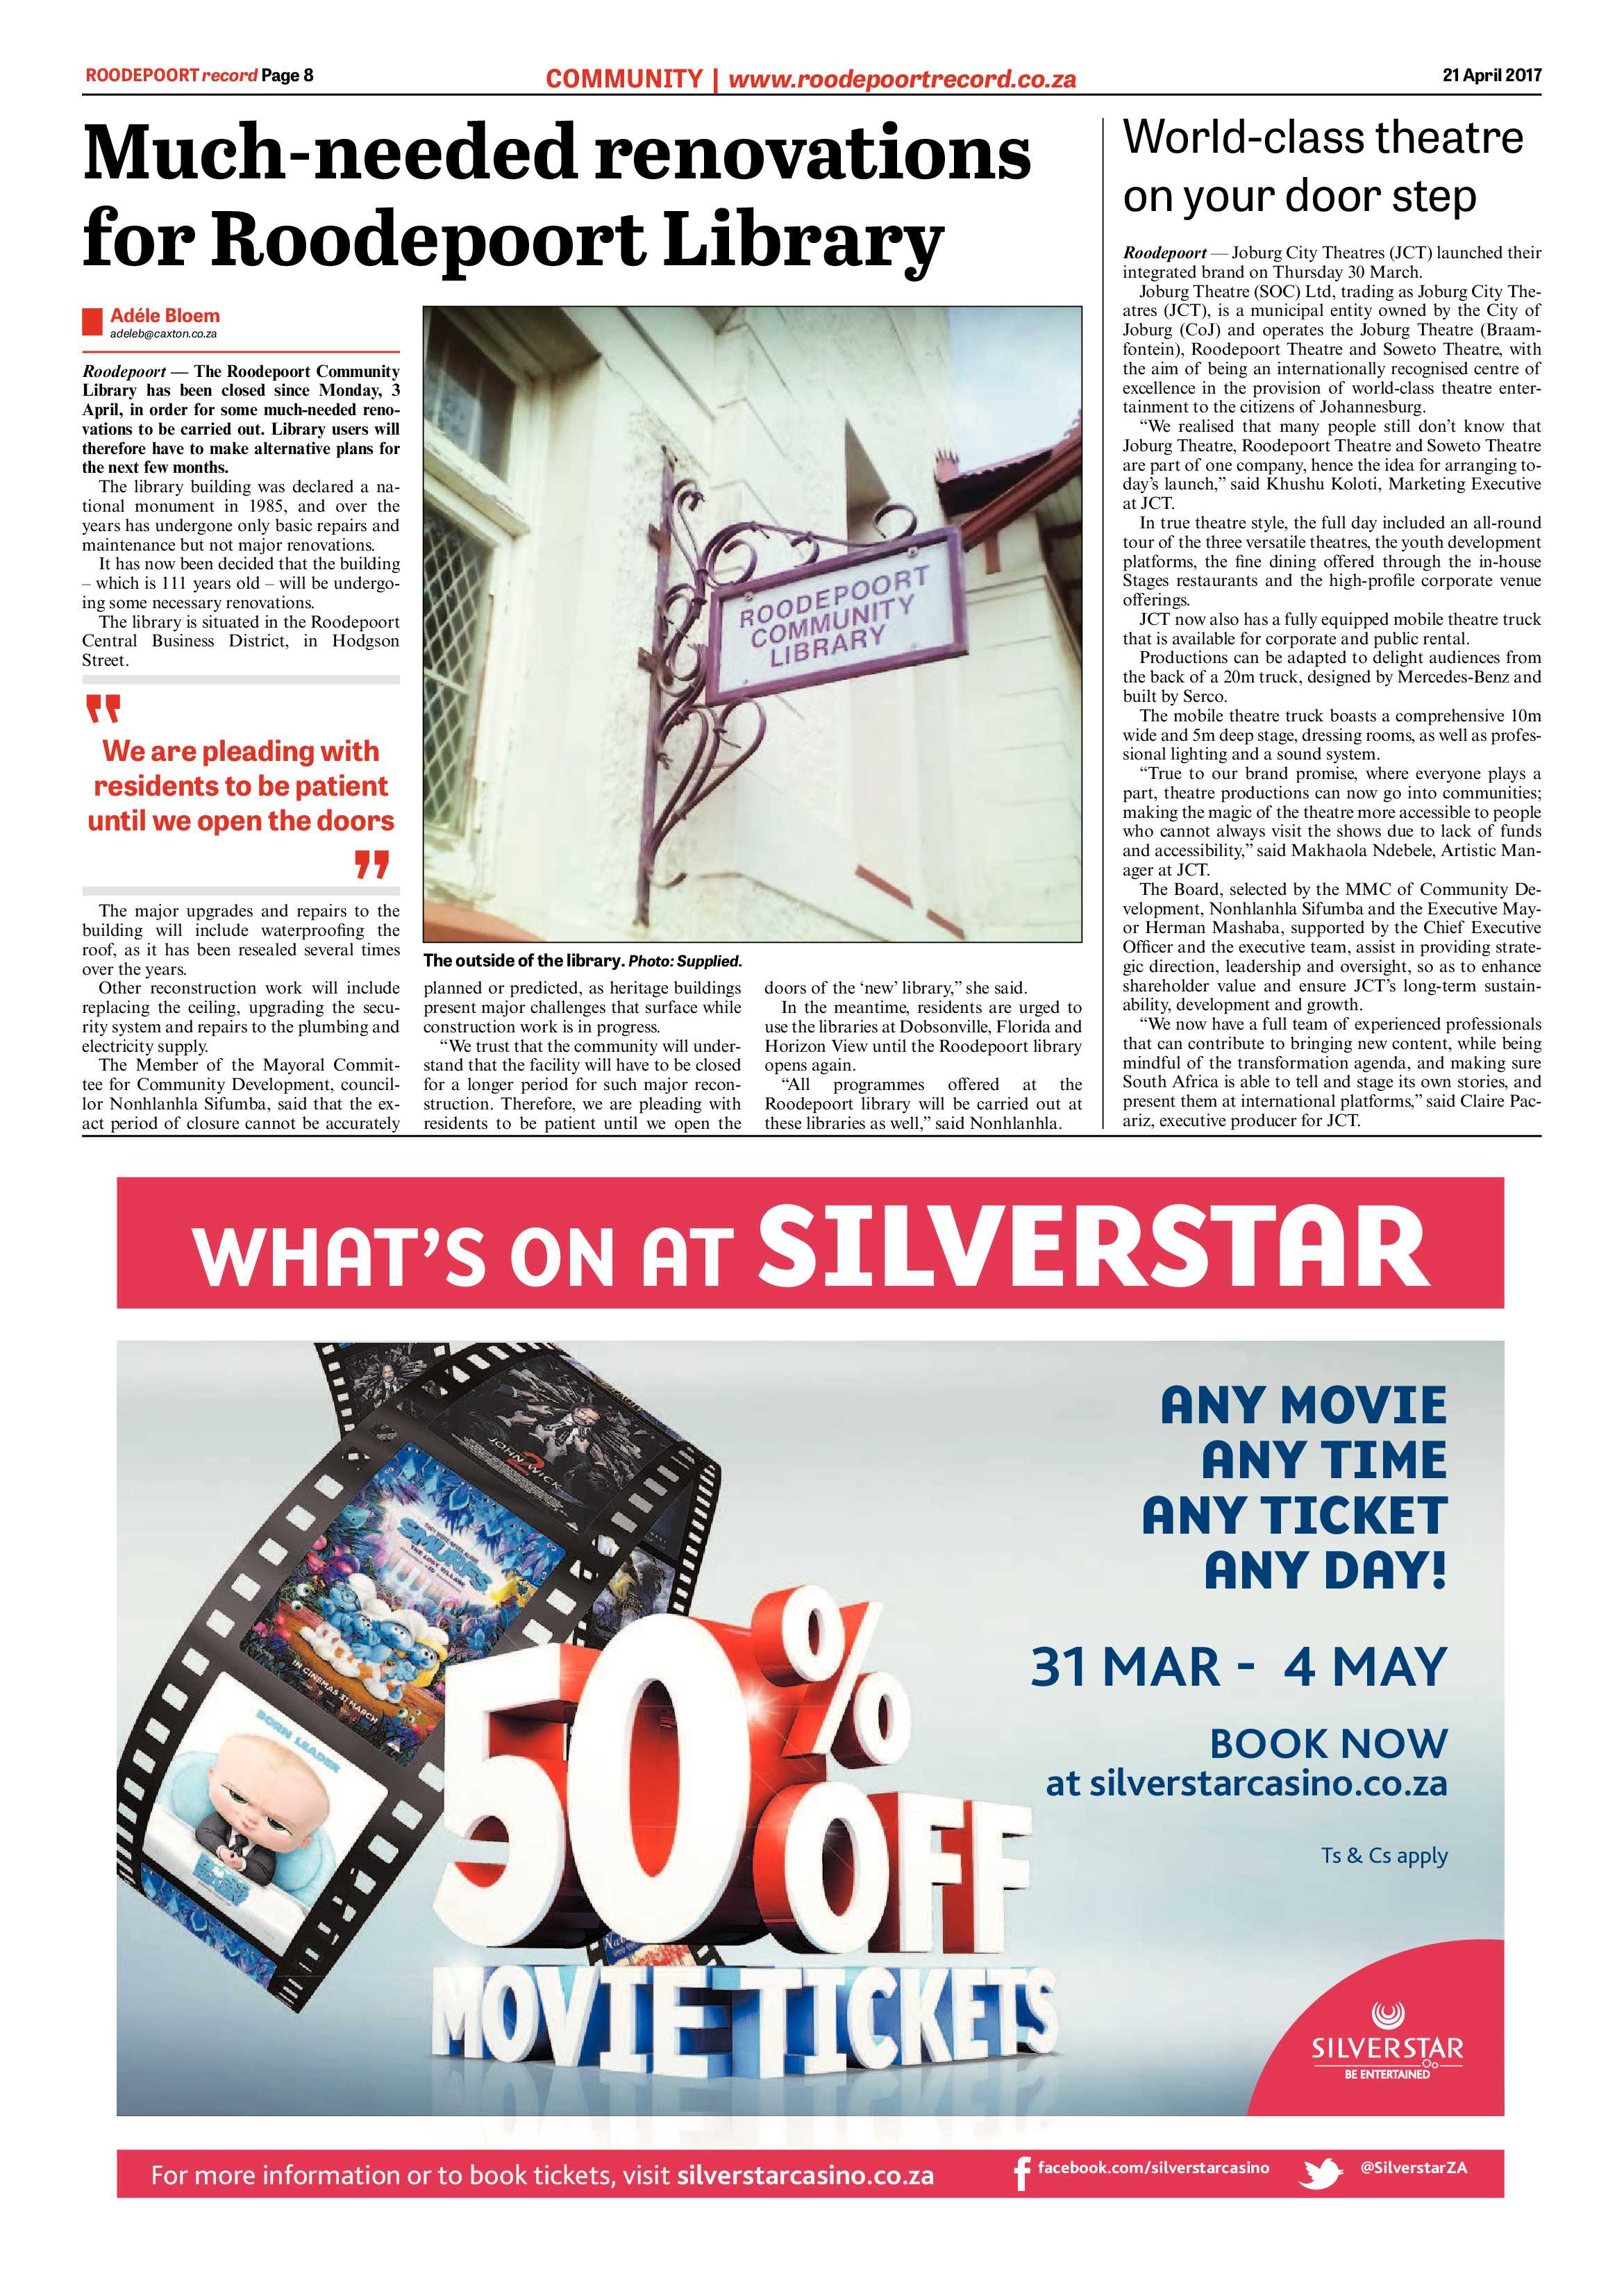 roodepoort-record-21-april-2017-epapers-page-8